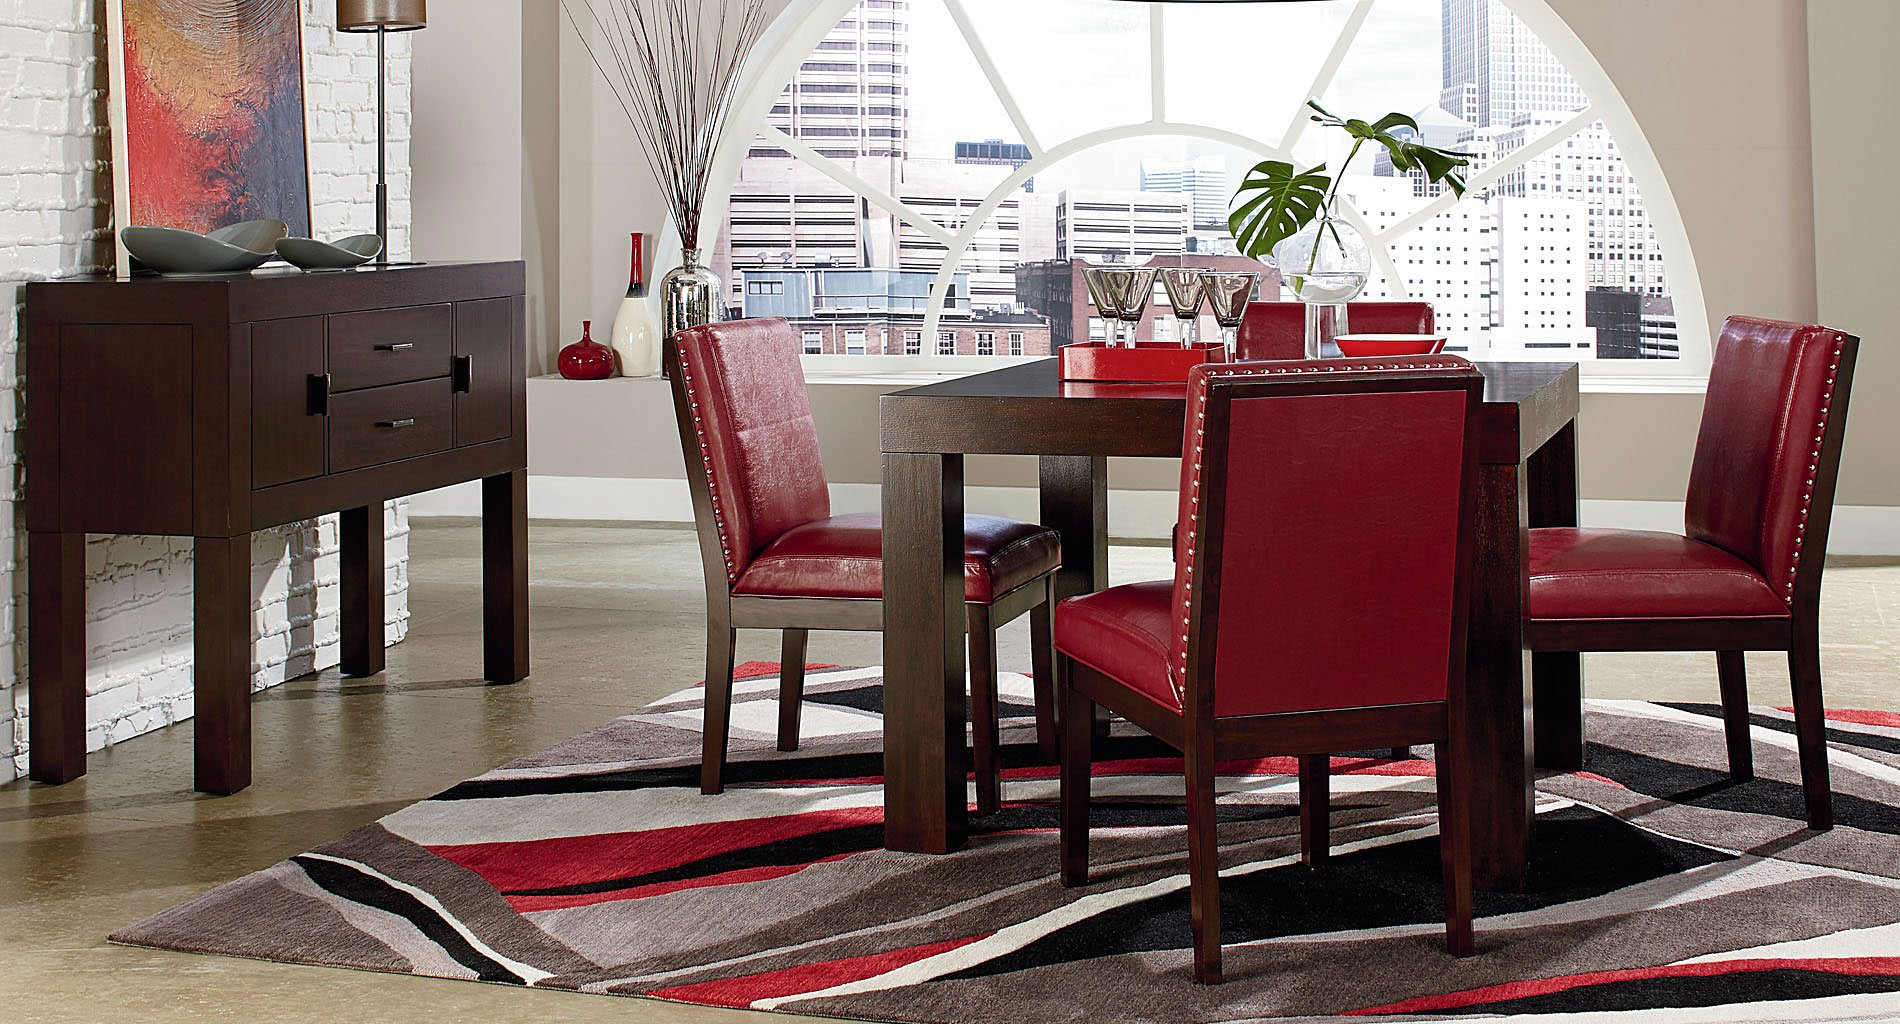 red and black dining room sets | Couture Elegance Dining Room Set w/ Red Chairs by Standard ...